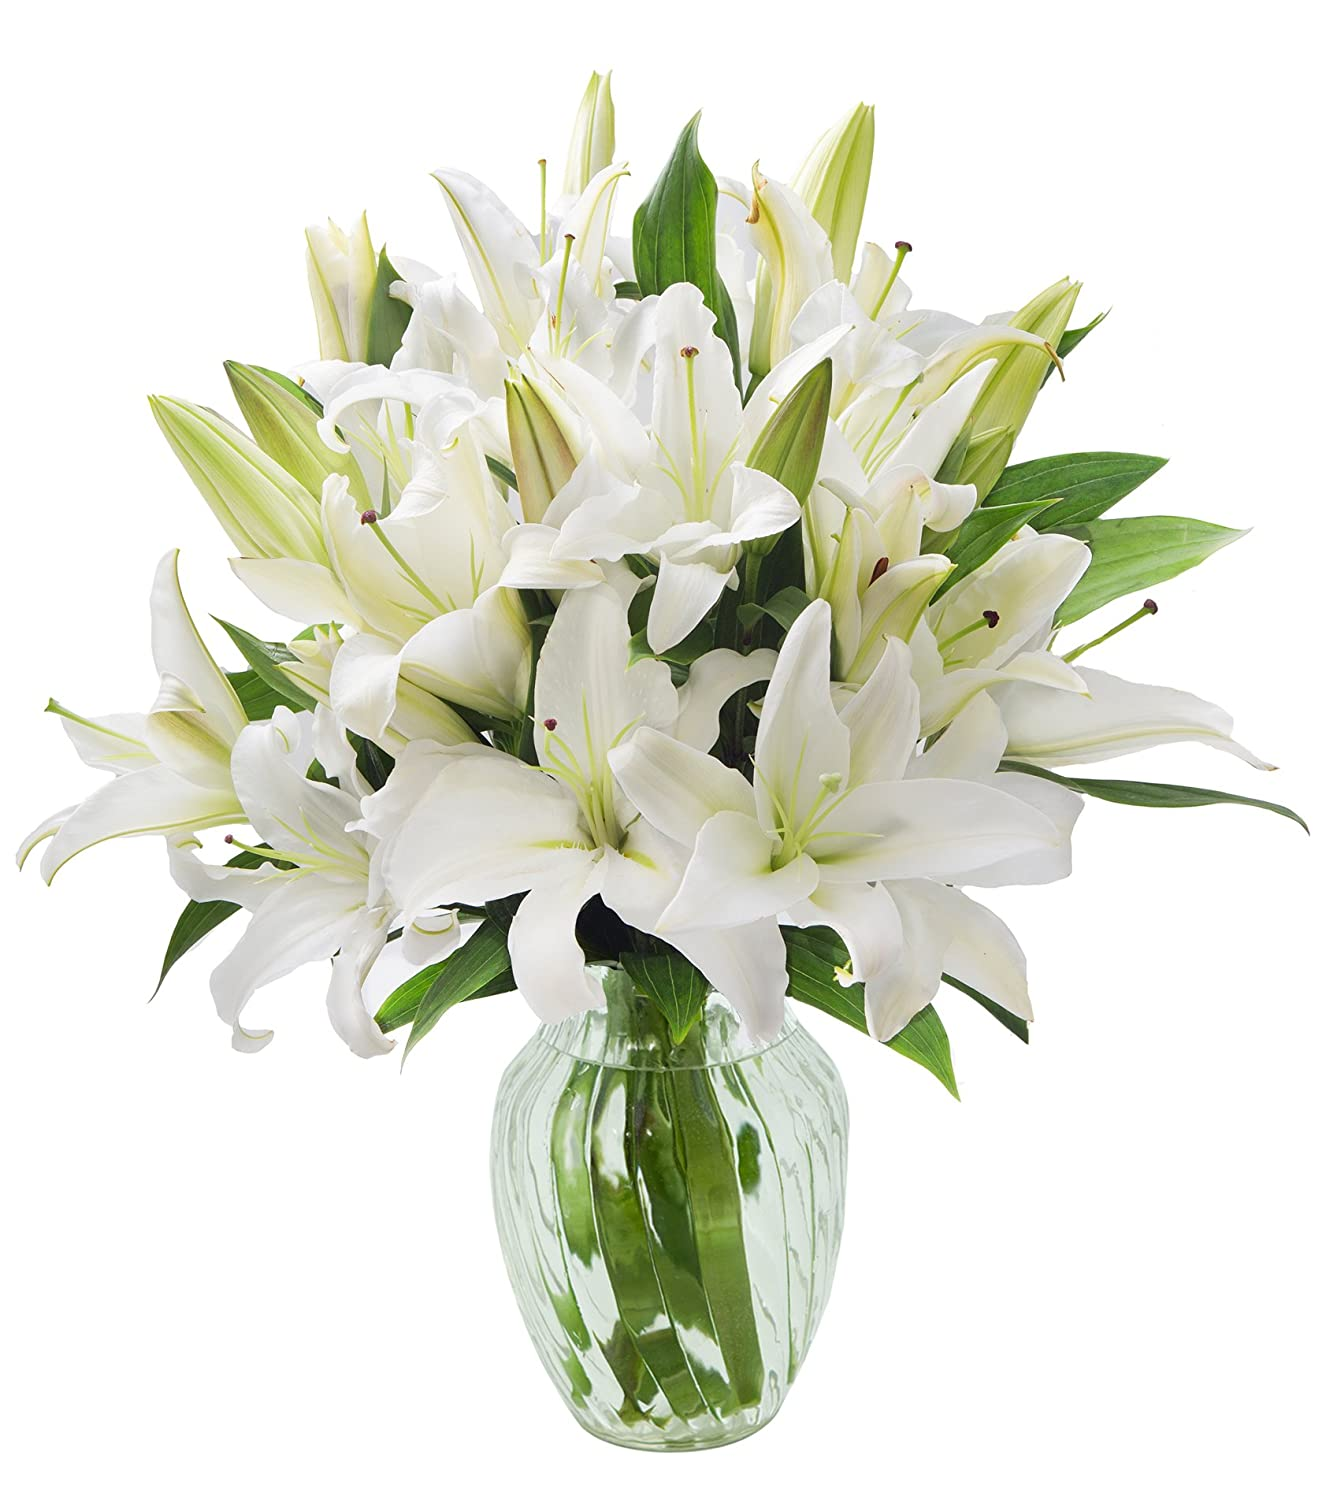 Amazon.com : KaBloom Pure Love White Lily Bouquet of 13 White Lilies ...